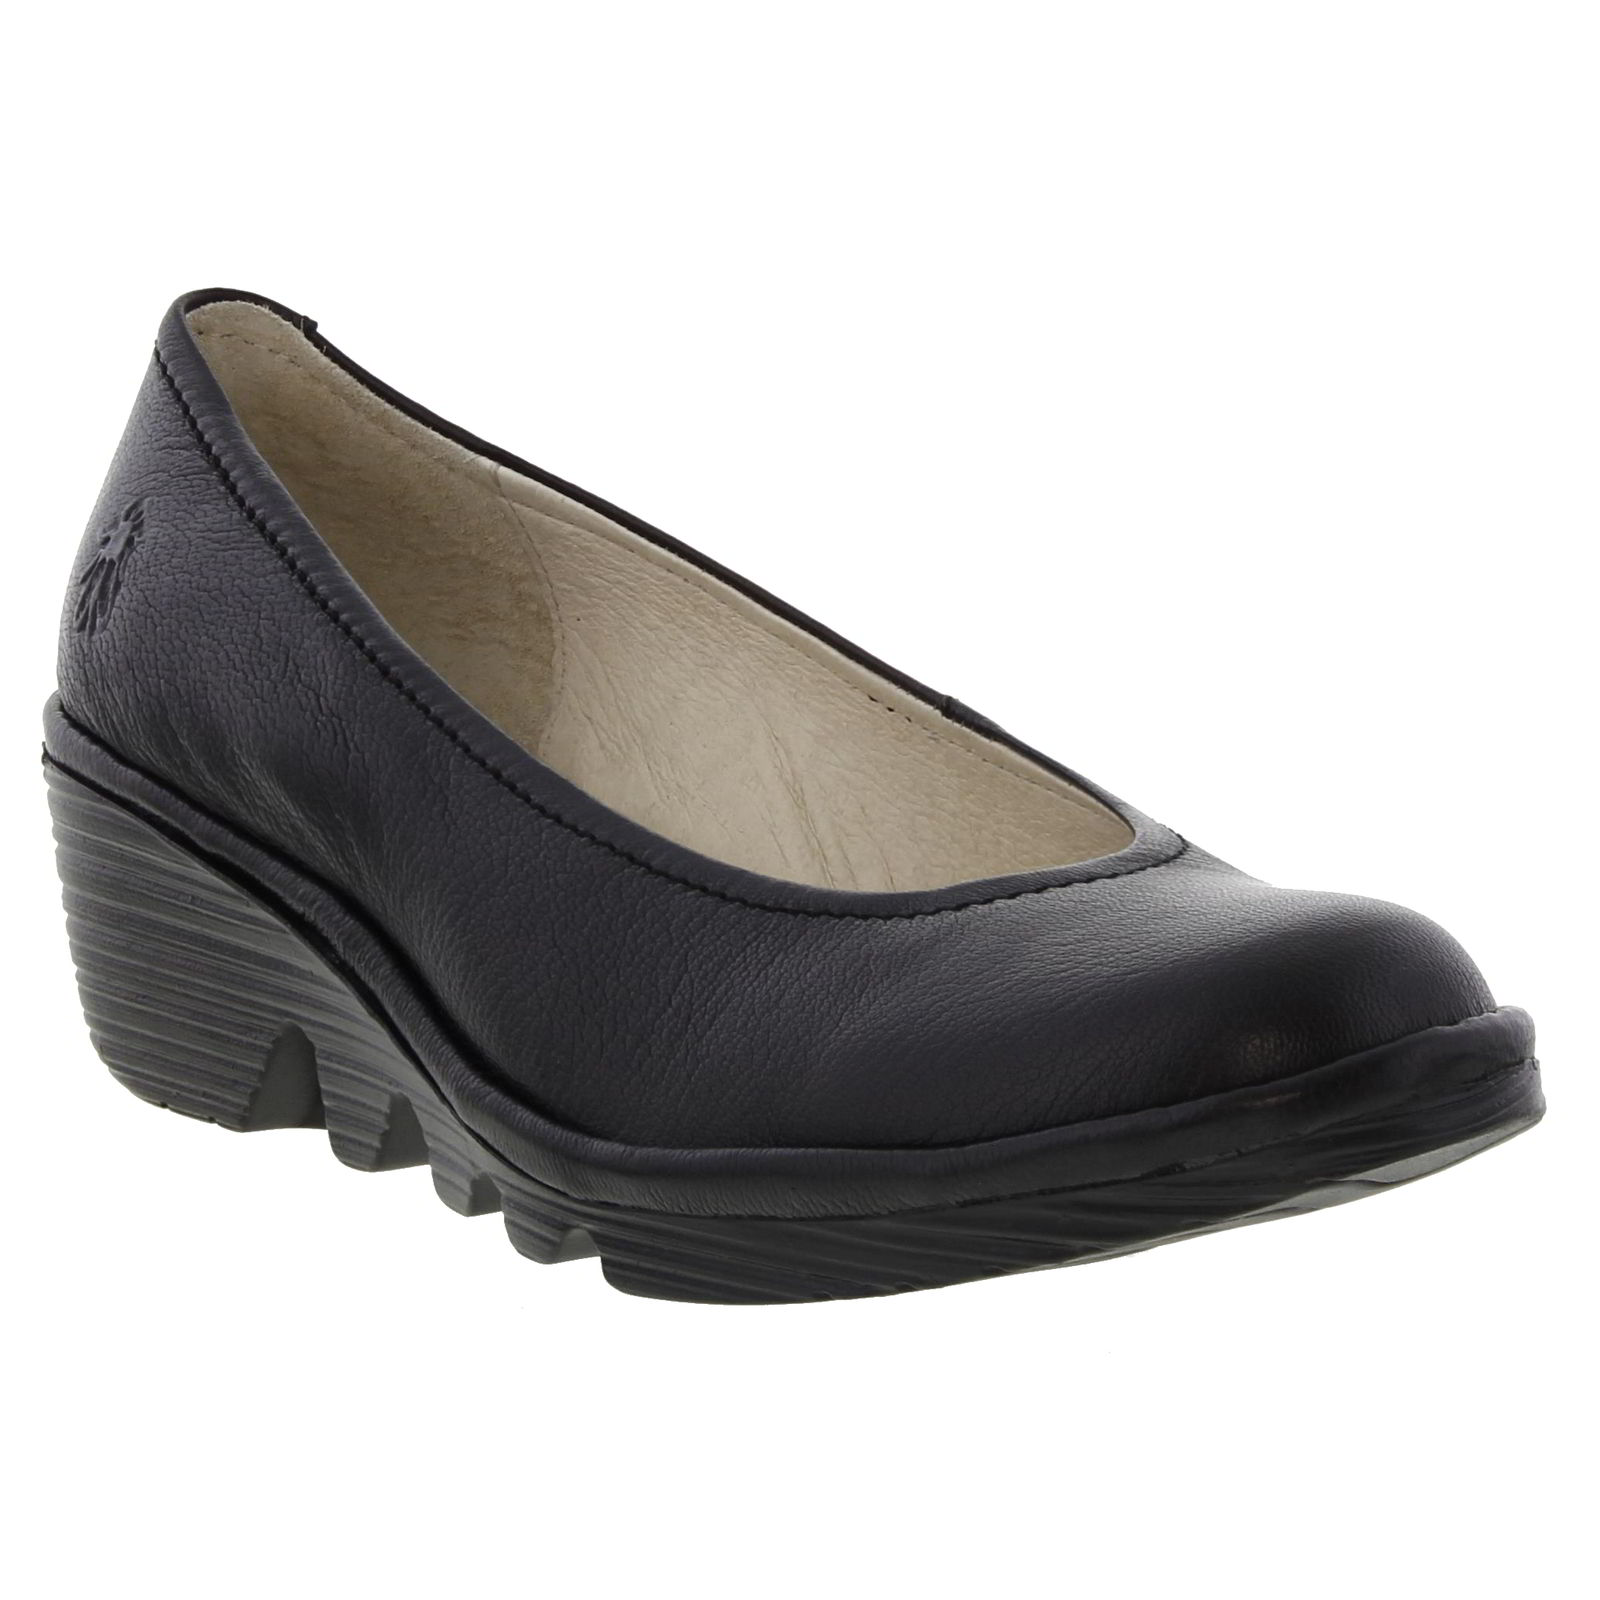 Fly London Tram Womens Ladies Black Leather Wedge Sandals Size 4-8